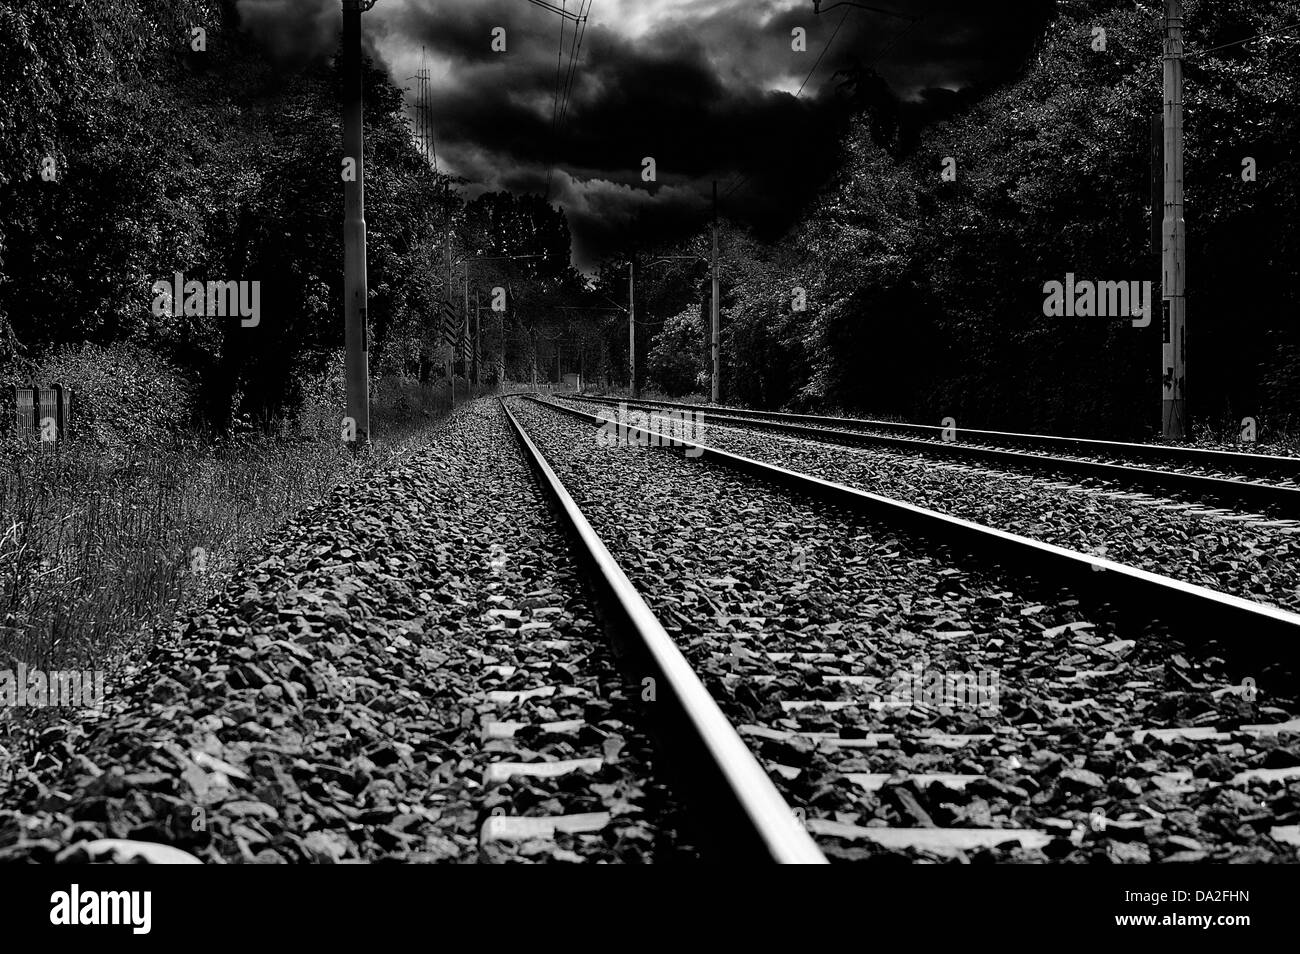 railways track and a stormy sky in background - Stock Image